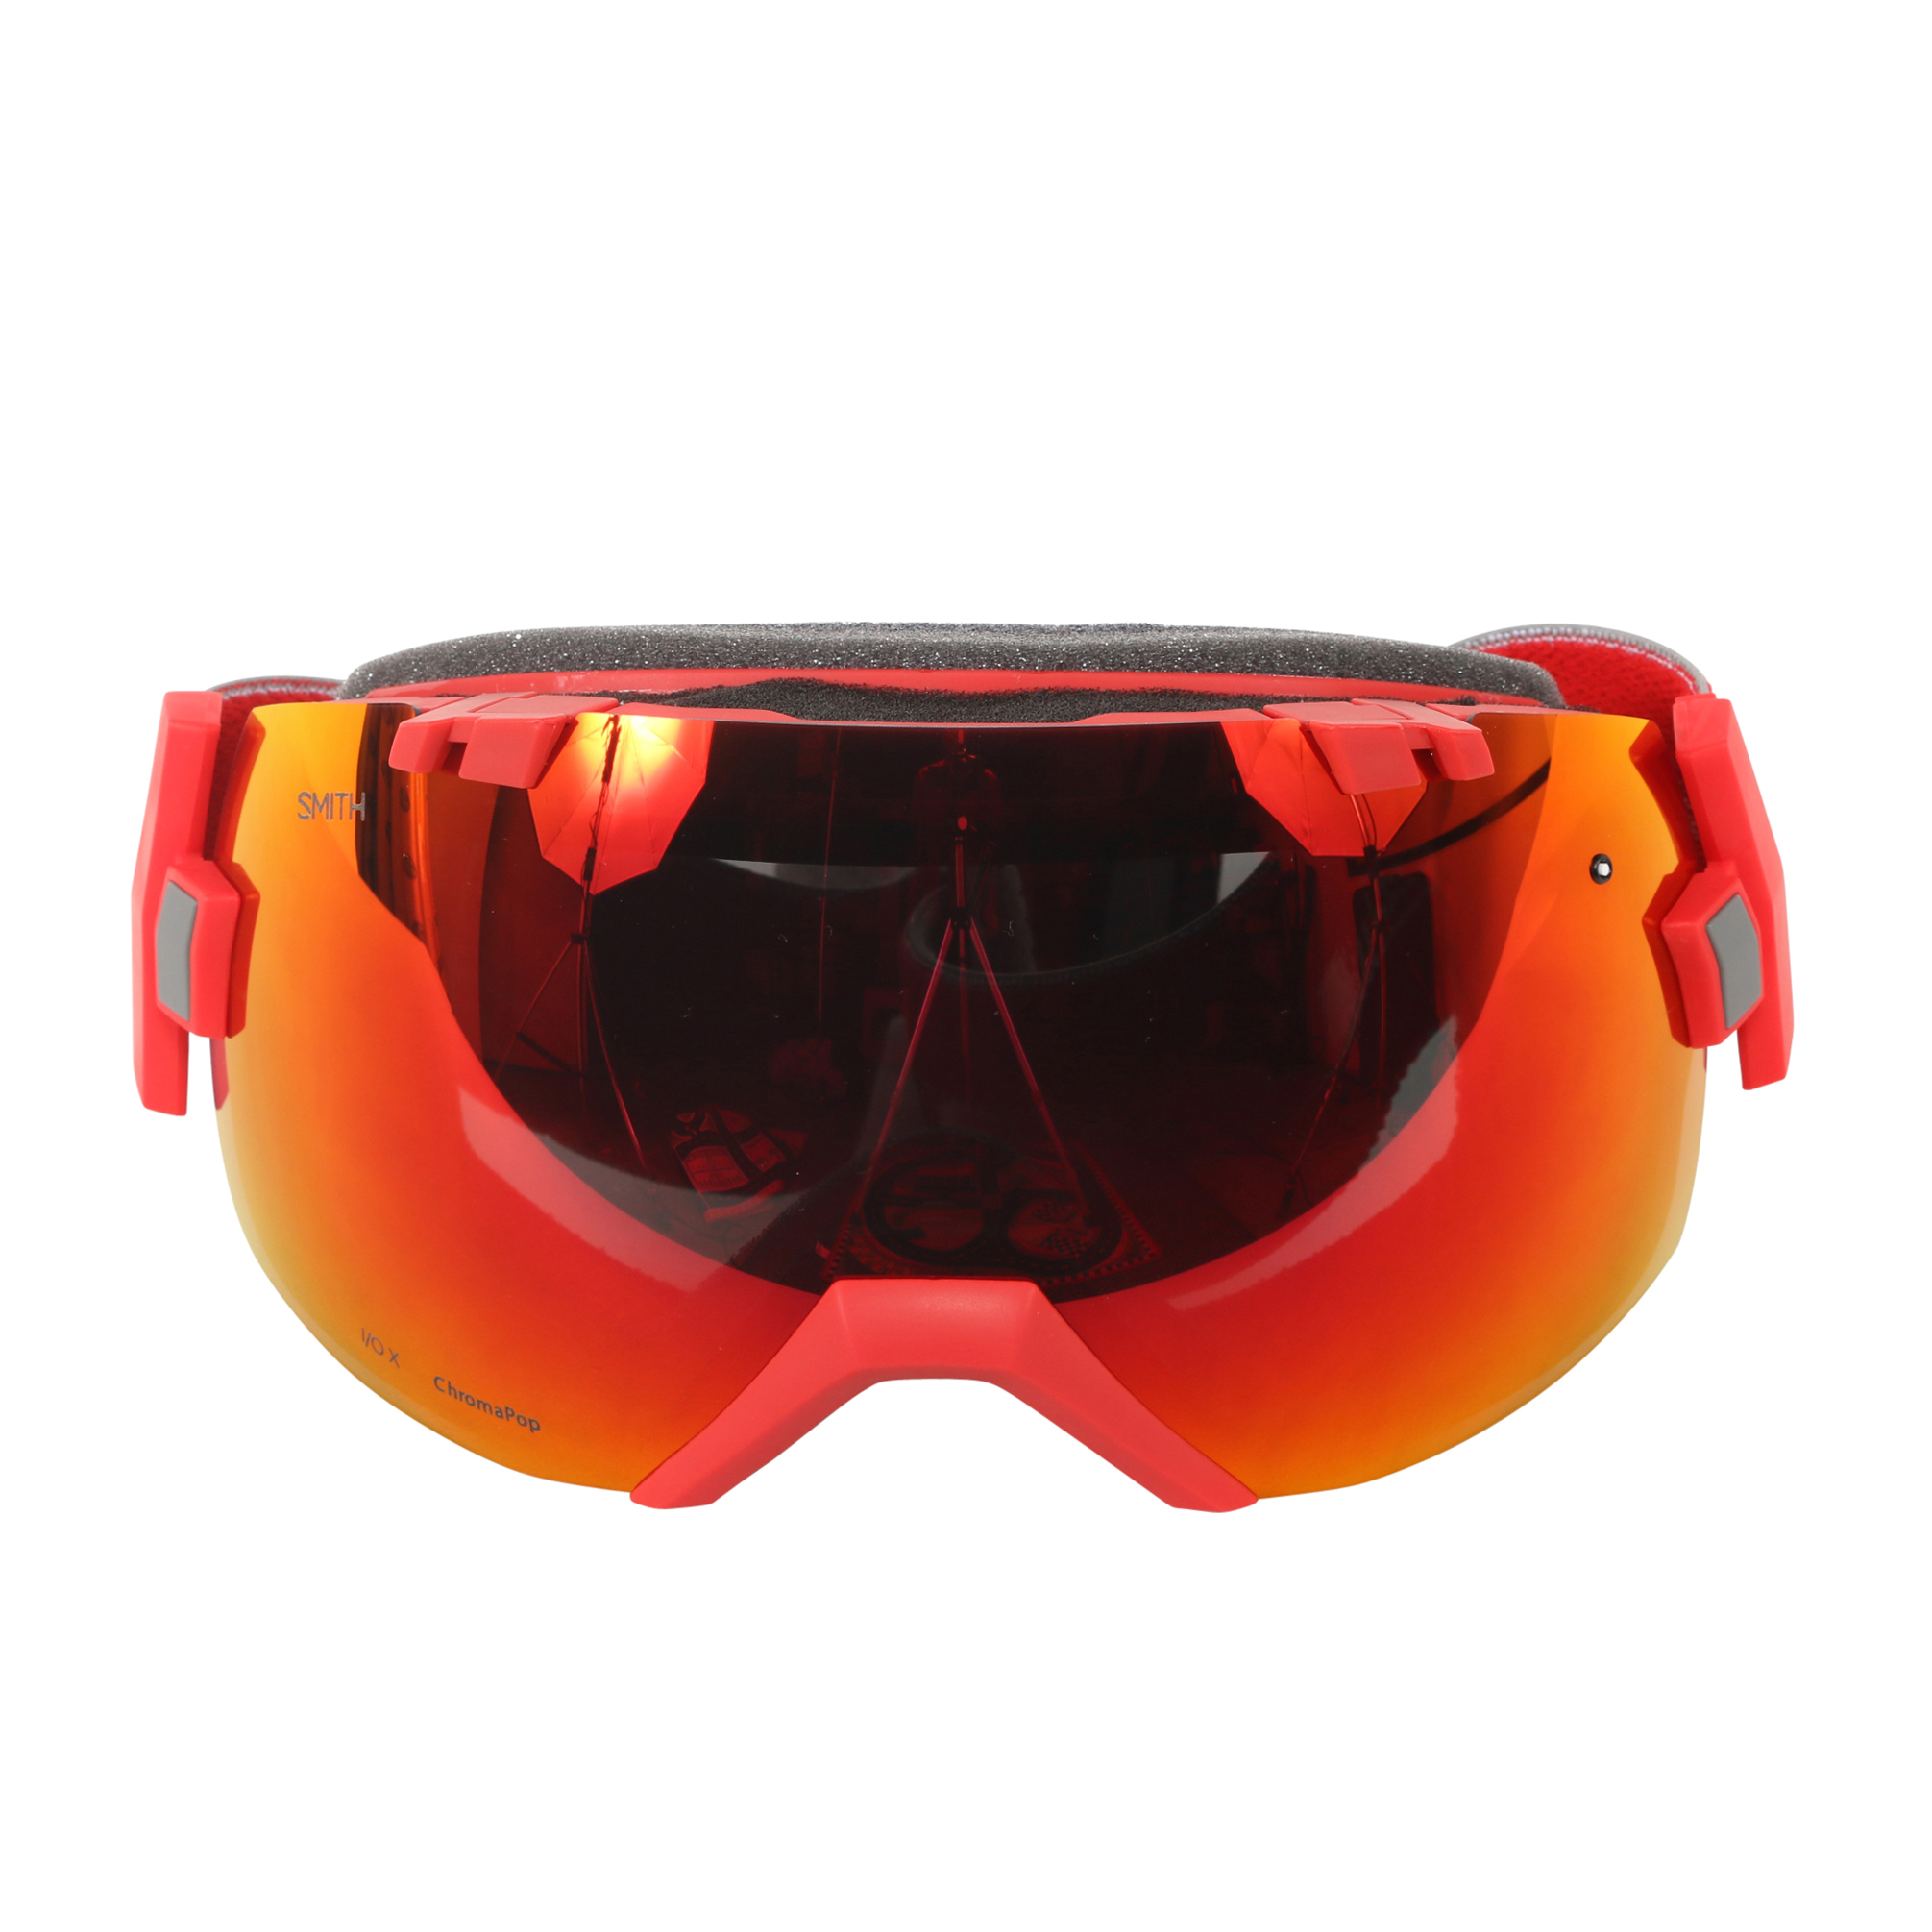 Smith Optics Fire Split ChromaPop Sun I OX Interchangeable Snow Goggles by Smith Optics